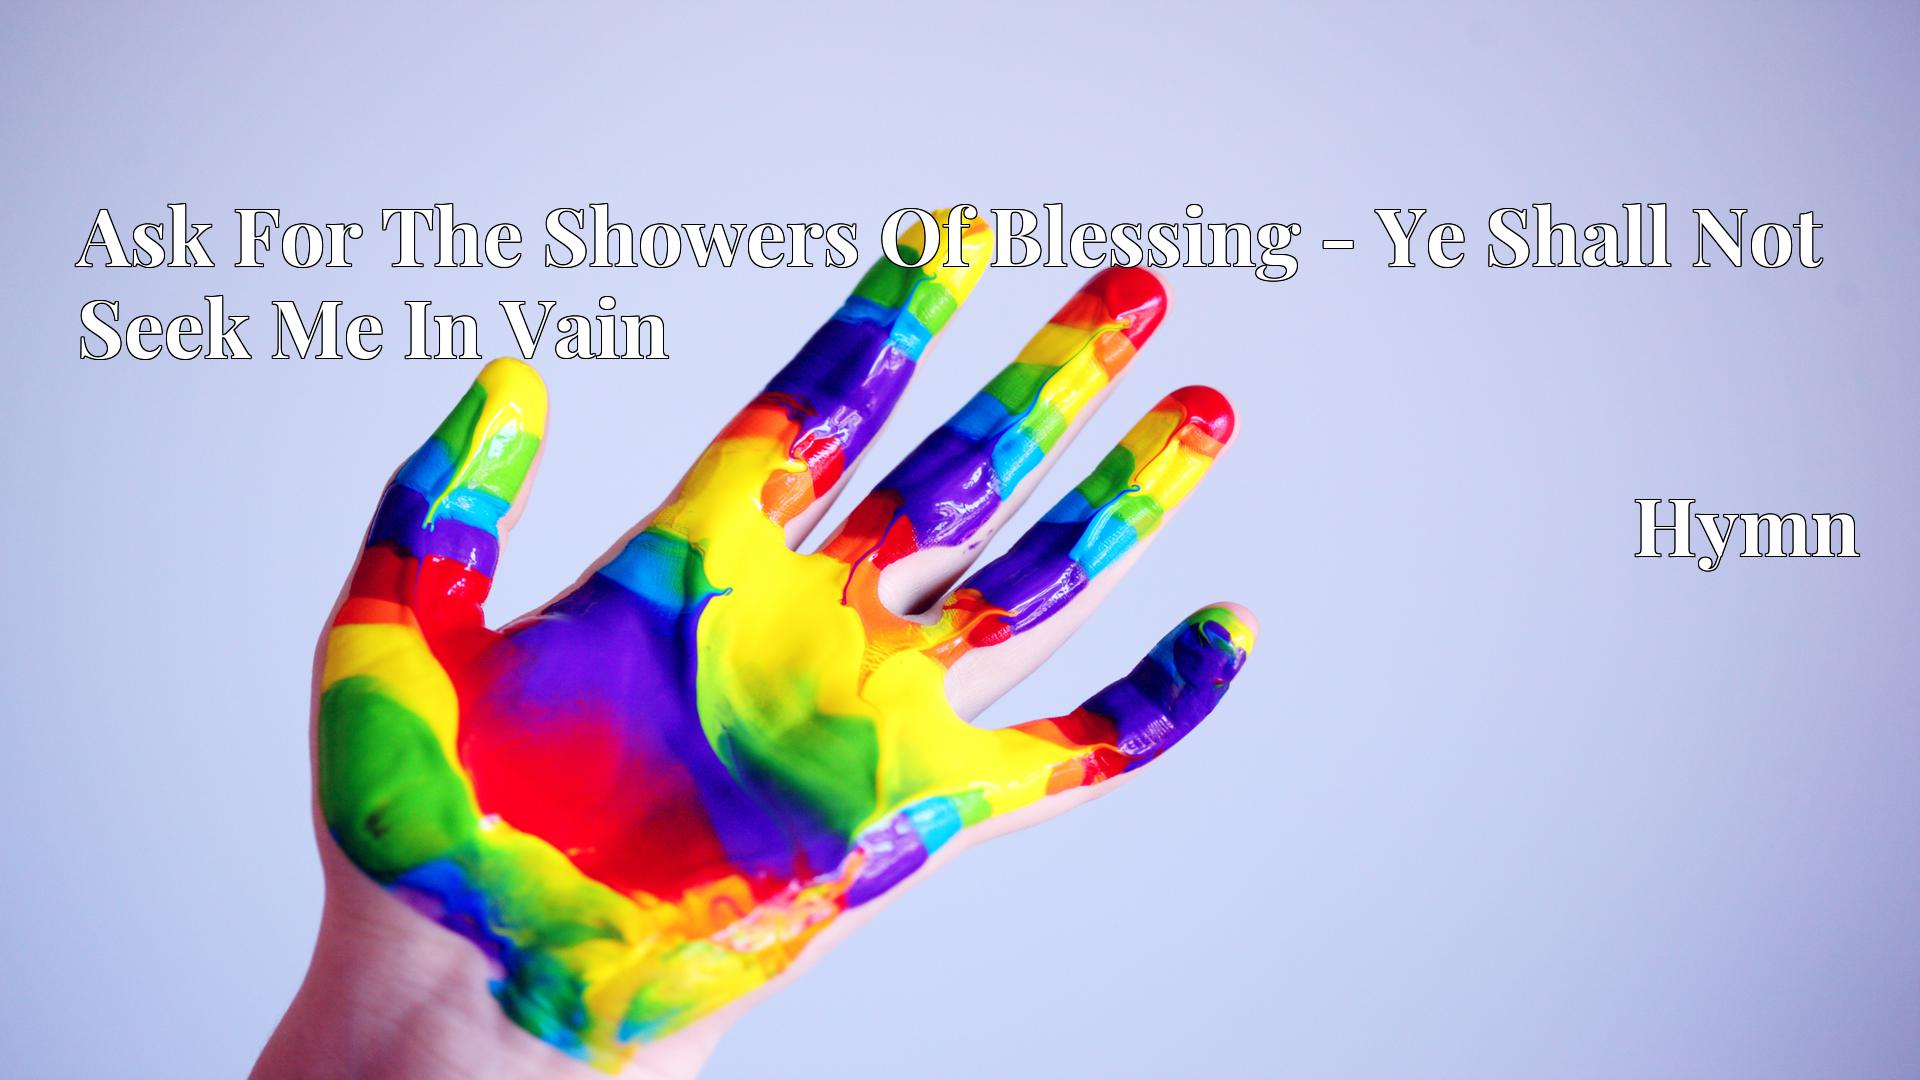 Ask For The Showers Of Blessing - Ye Shall Not Seek Me In Vain - Hymn